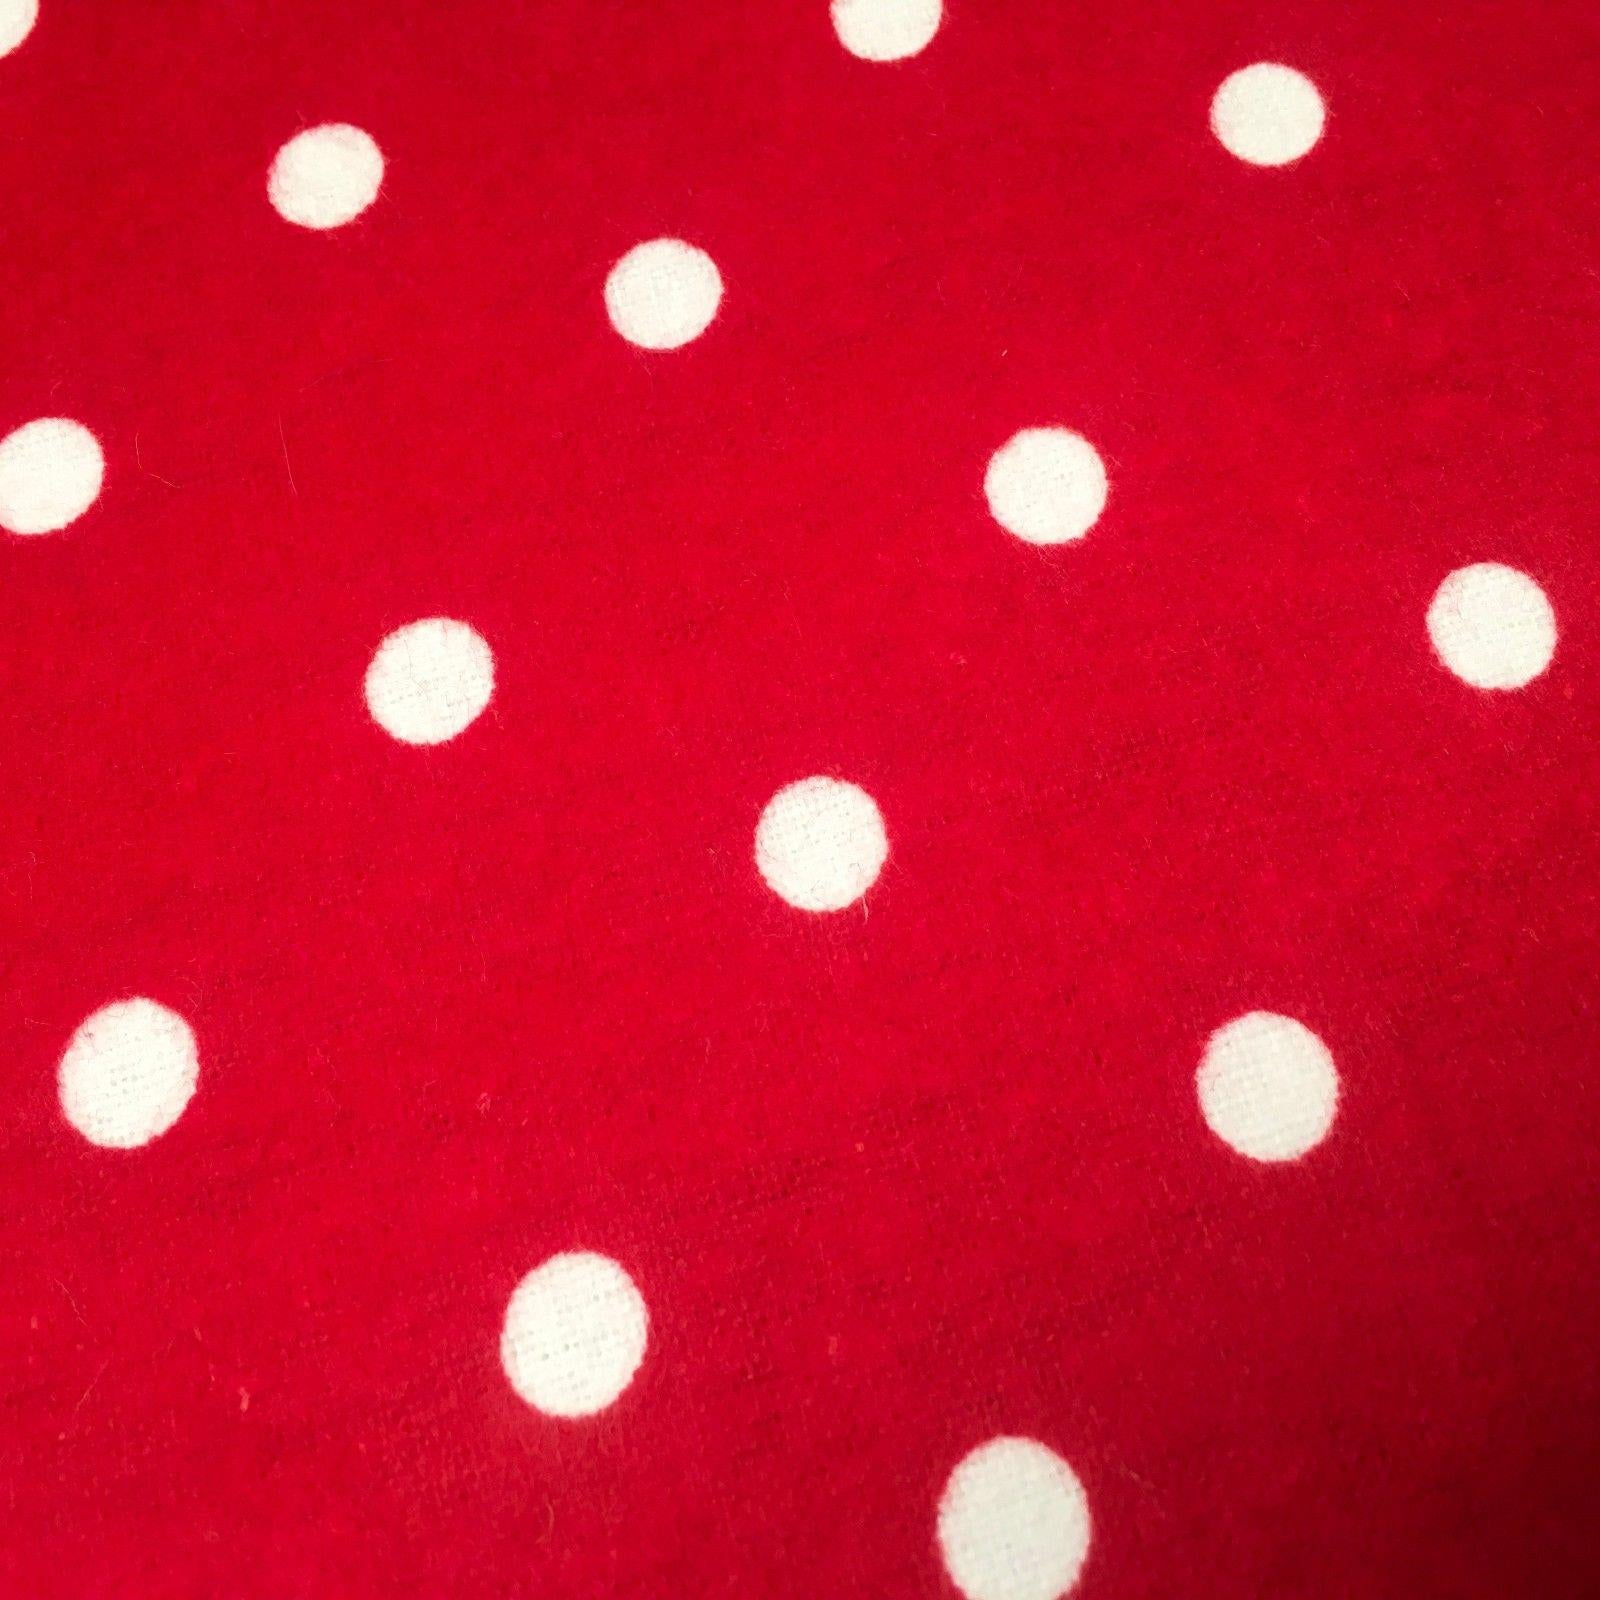 "White Spot on red  Cotton Wynciette Soft Brushed Flannel Fabric 58"" Wide MK988-1"